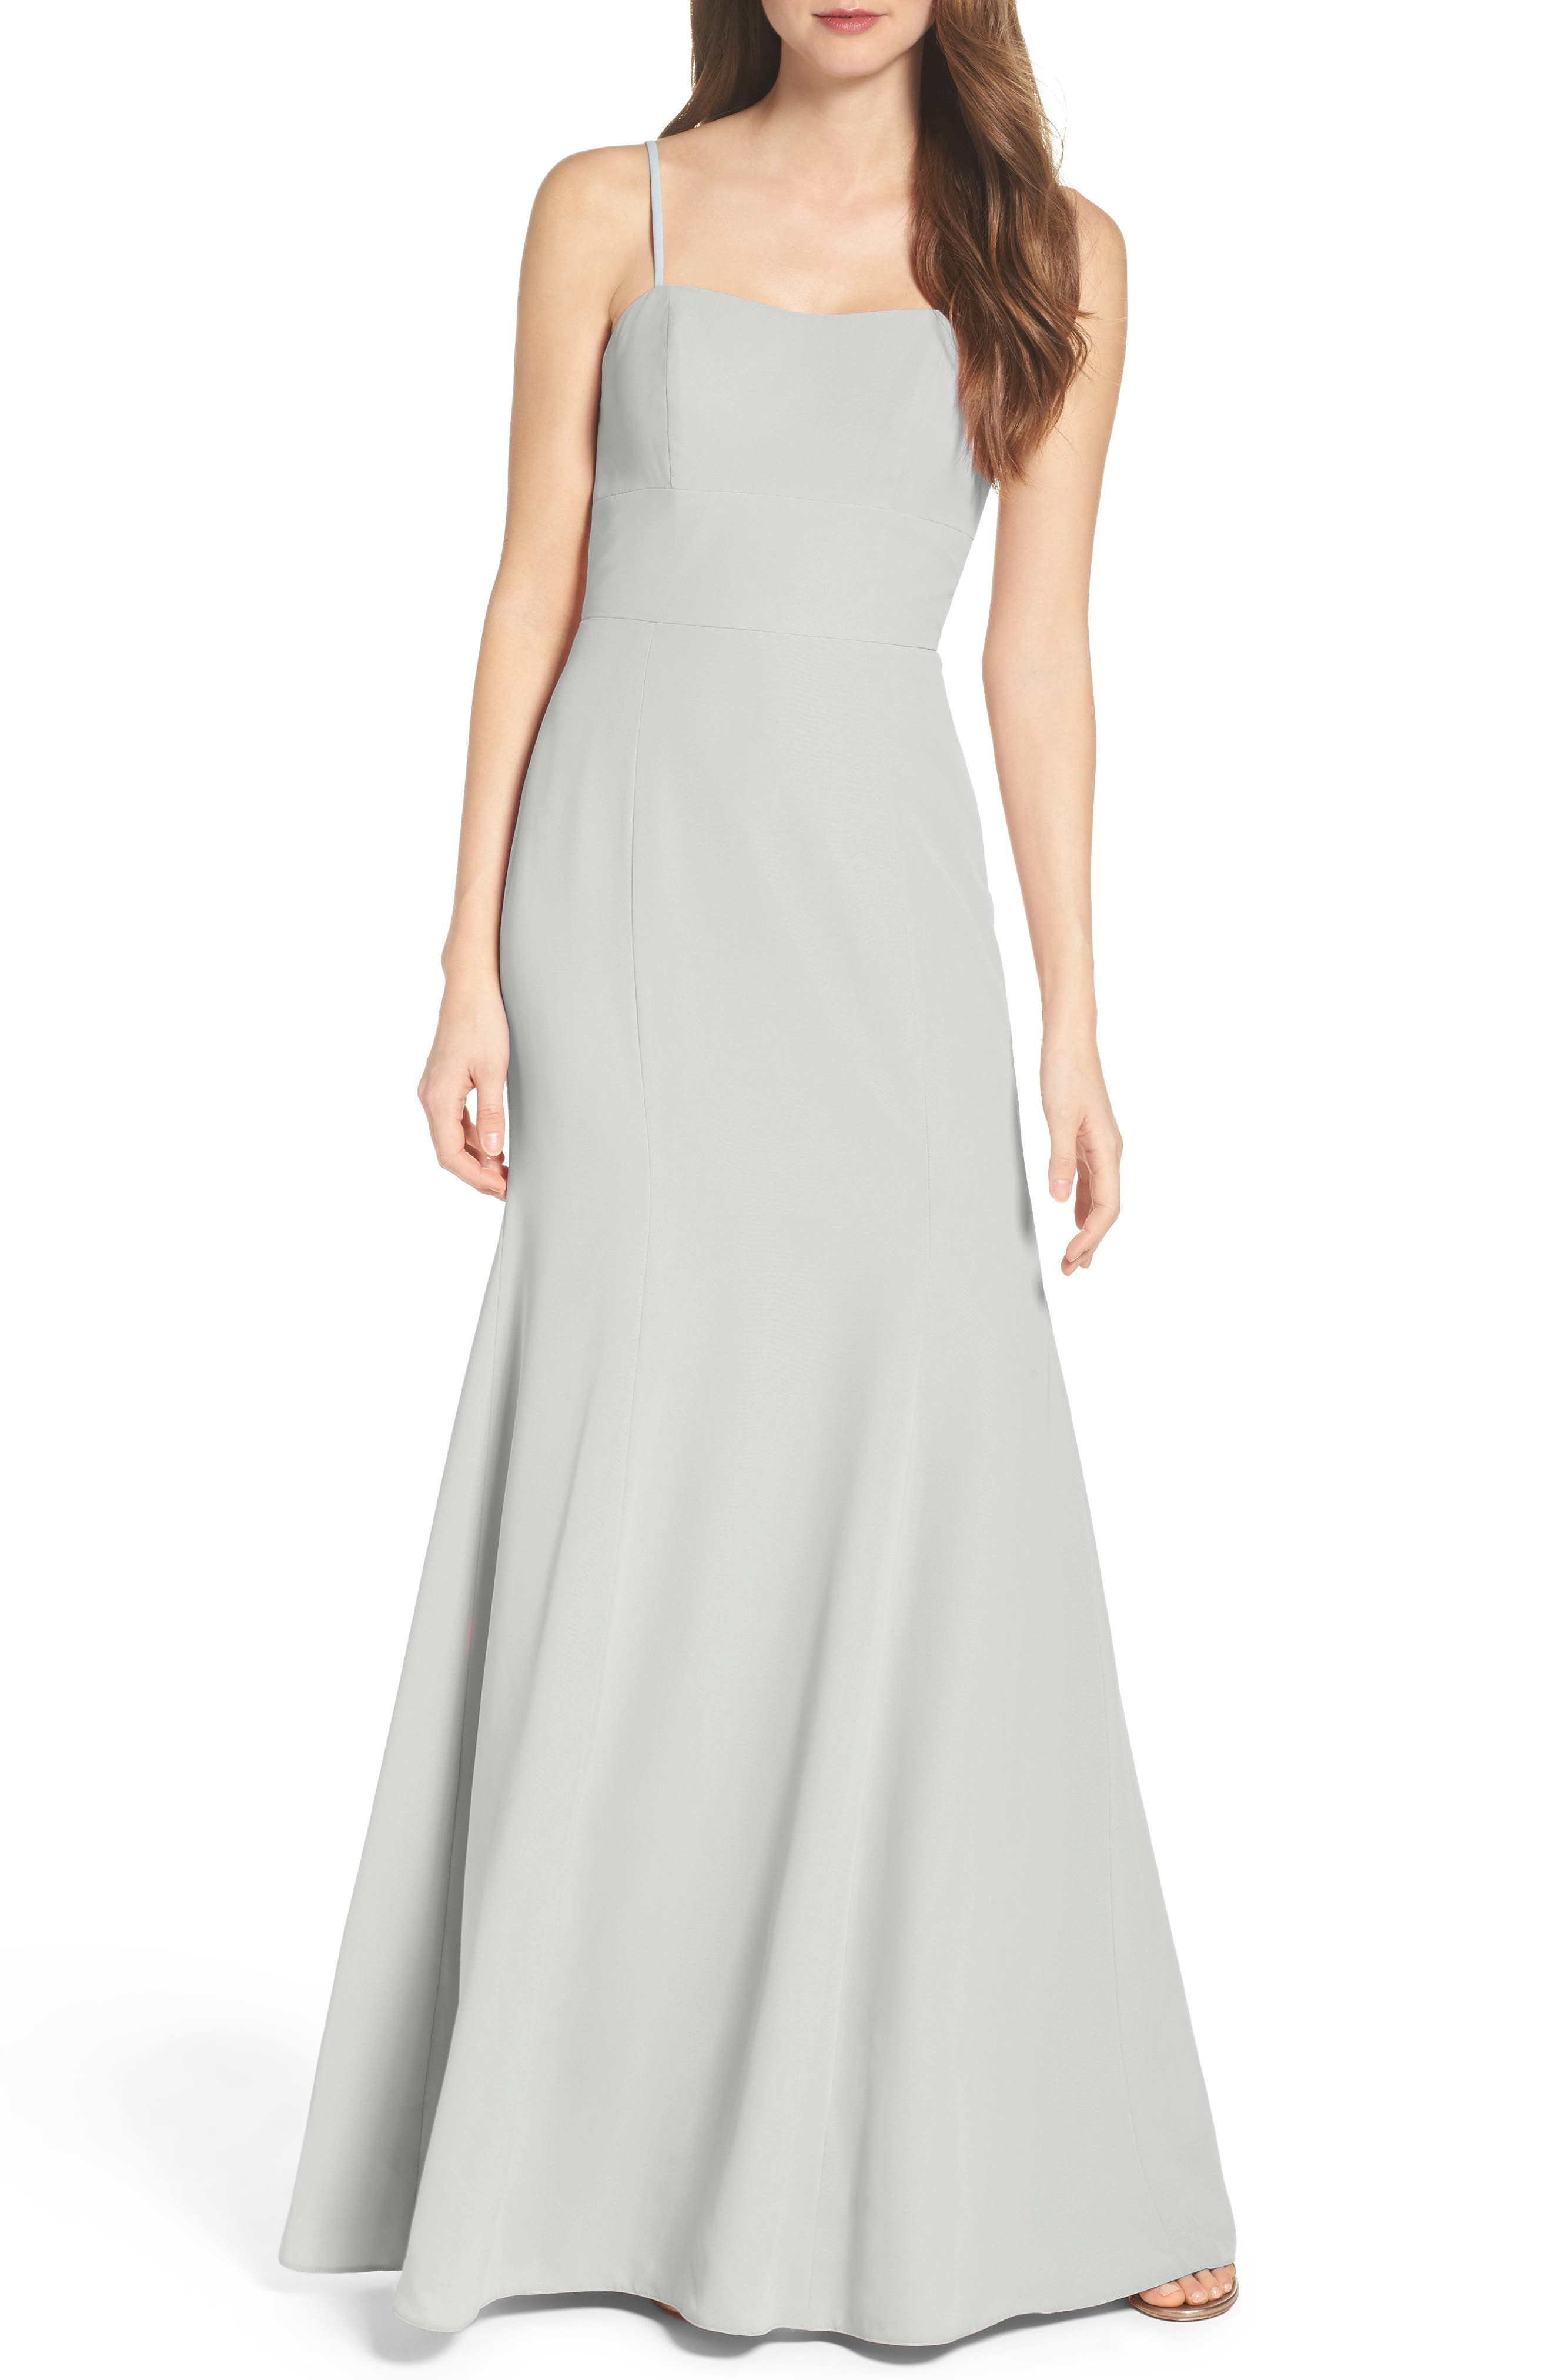 Convertible Strap Chiffon Gown,                             Alternate thumbnail 2, color,                             300